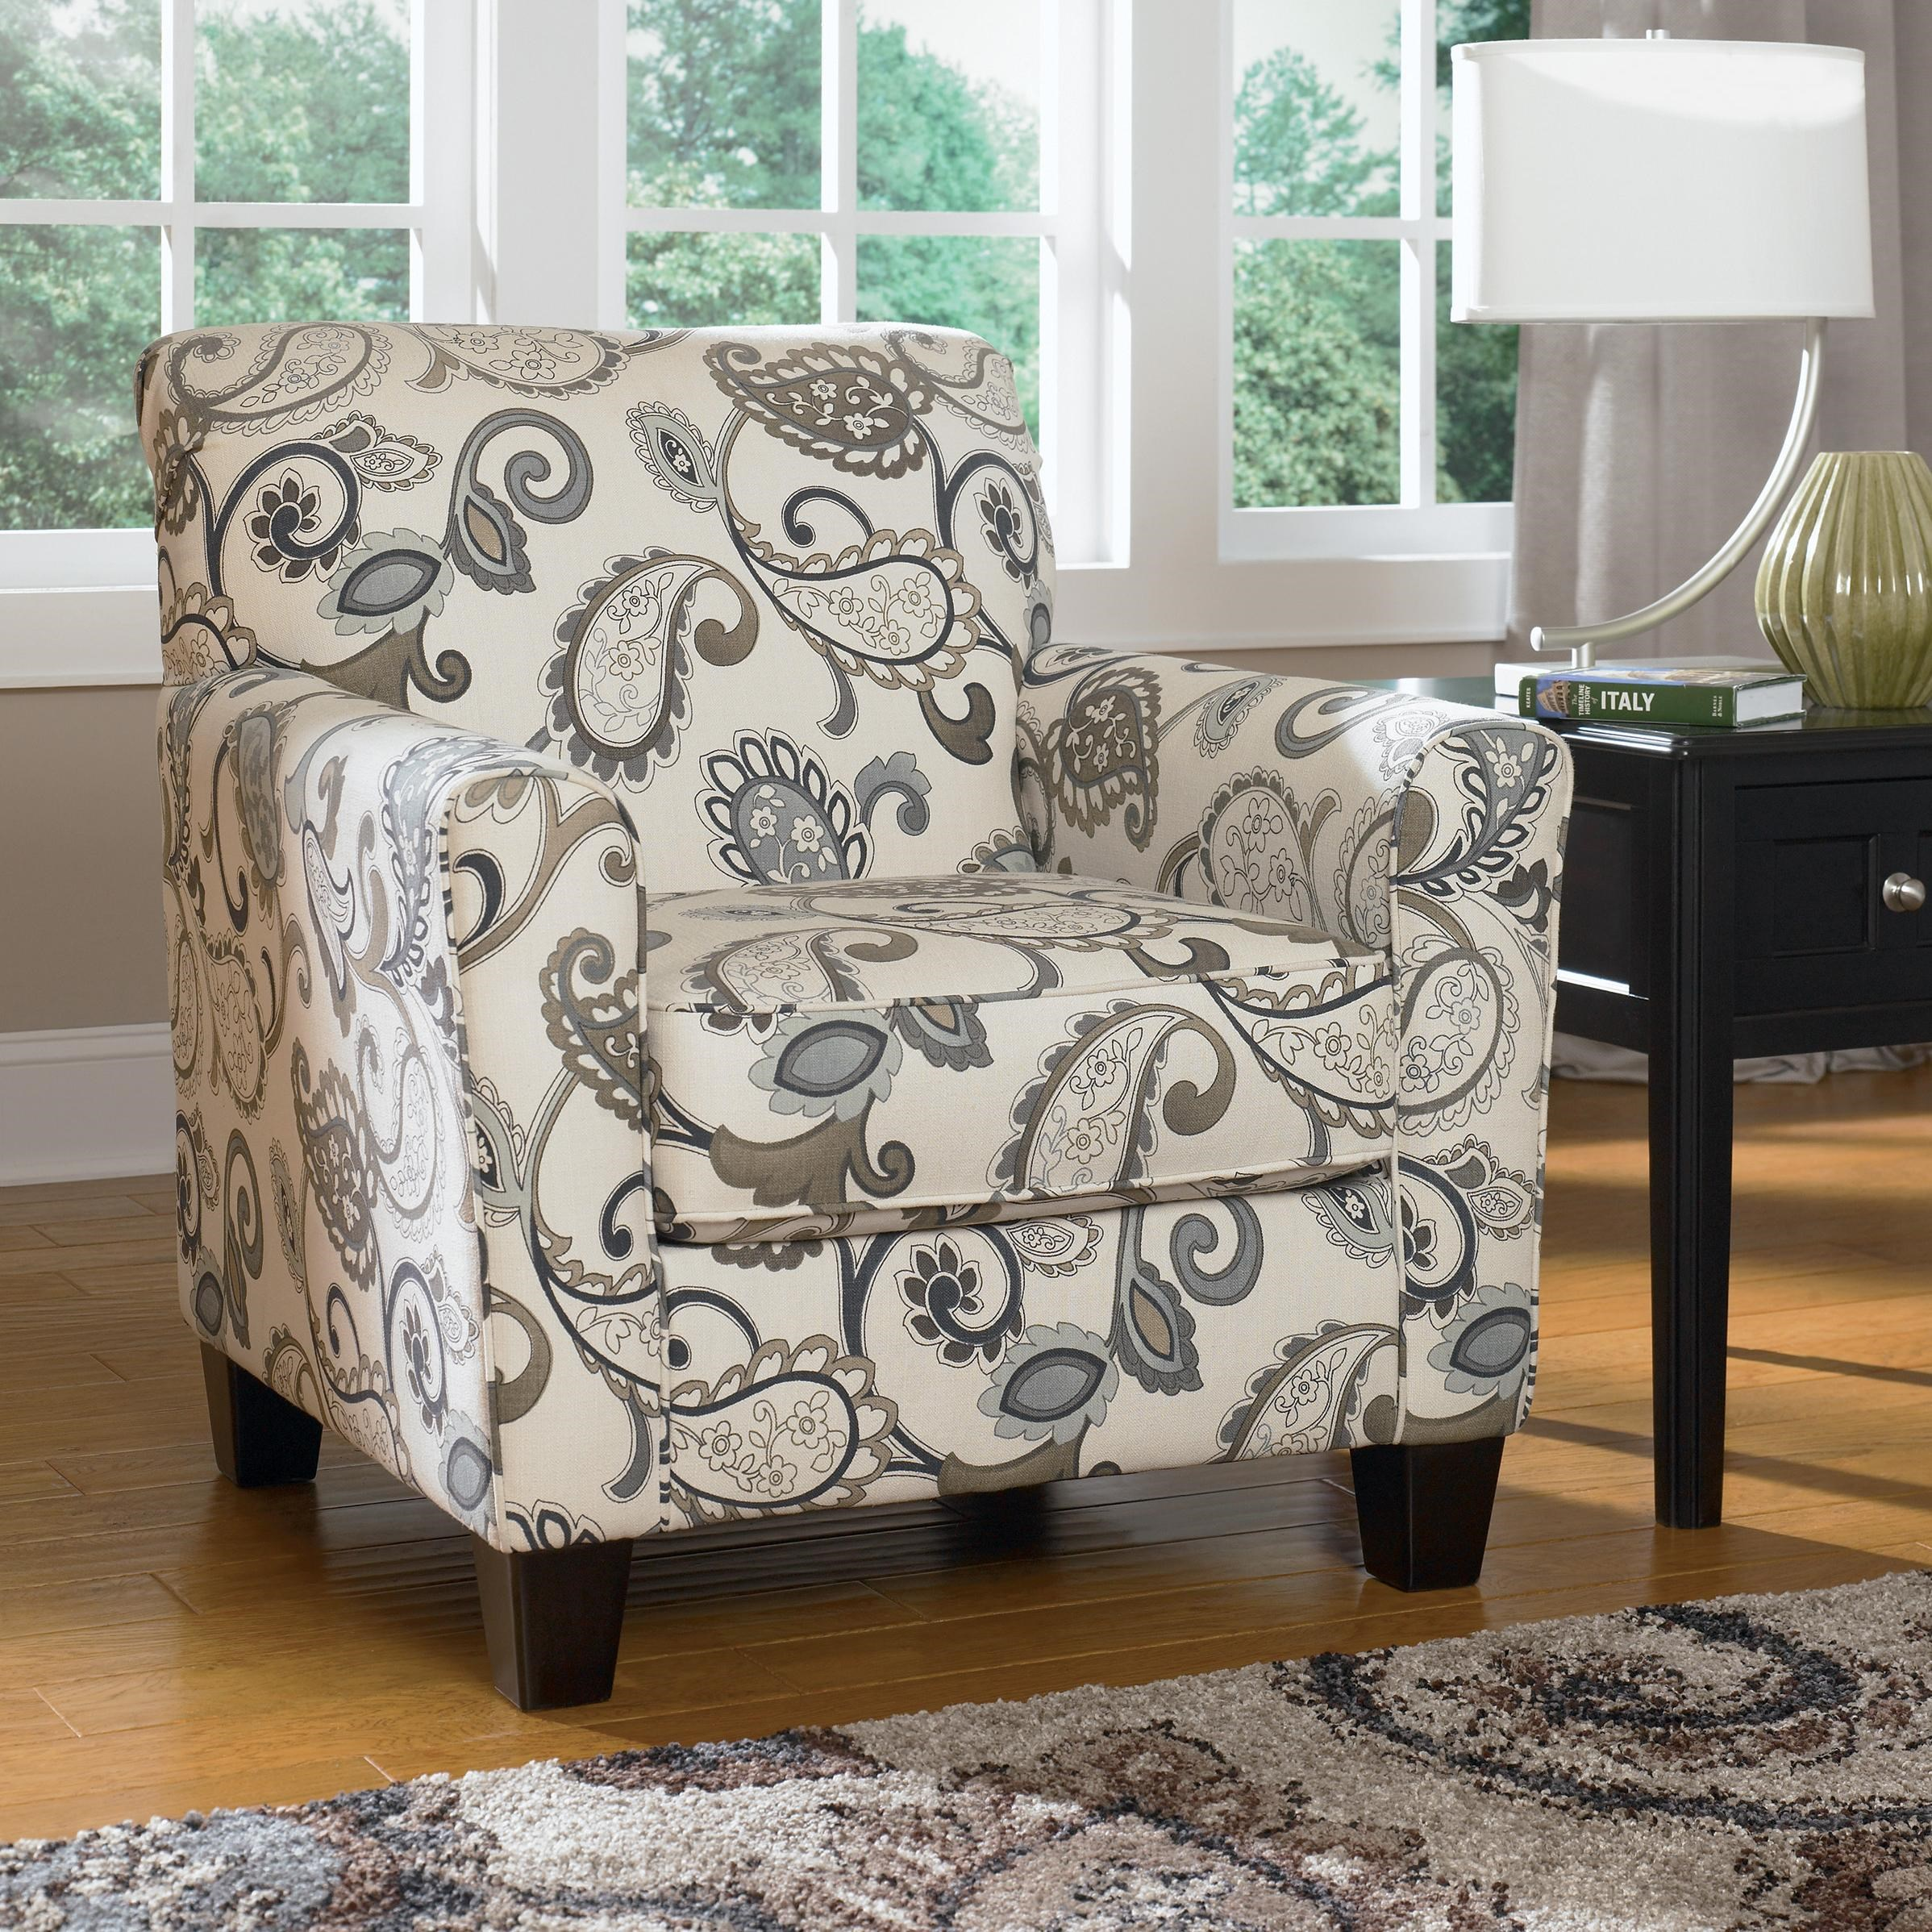 Ashley Furniture Yvette   Steel Accent Chair W/ Loose Seat Cushion